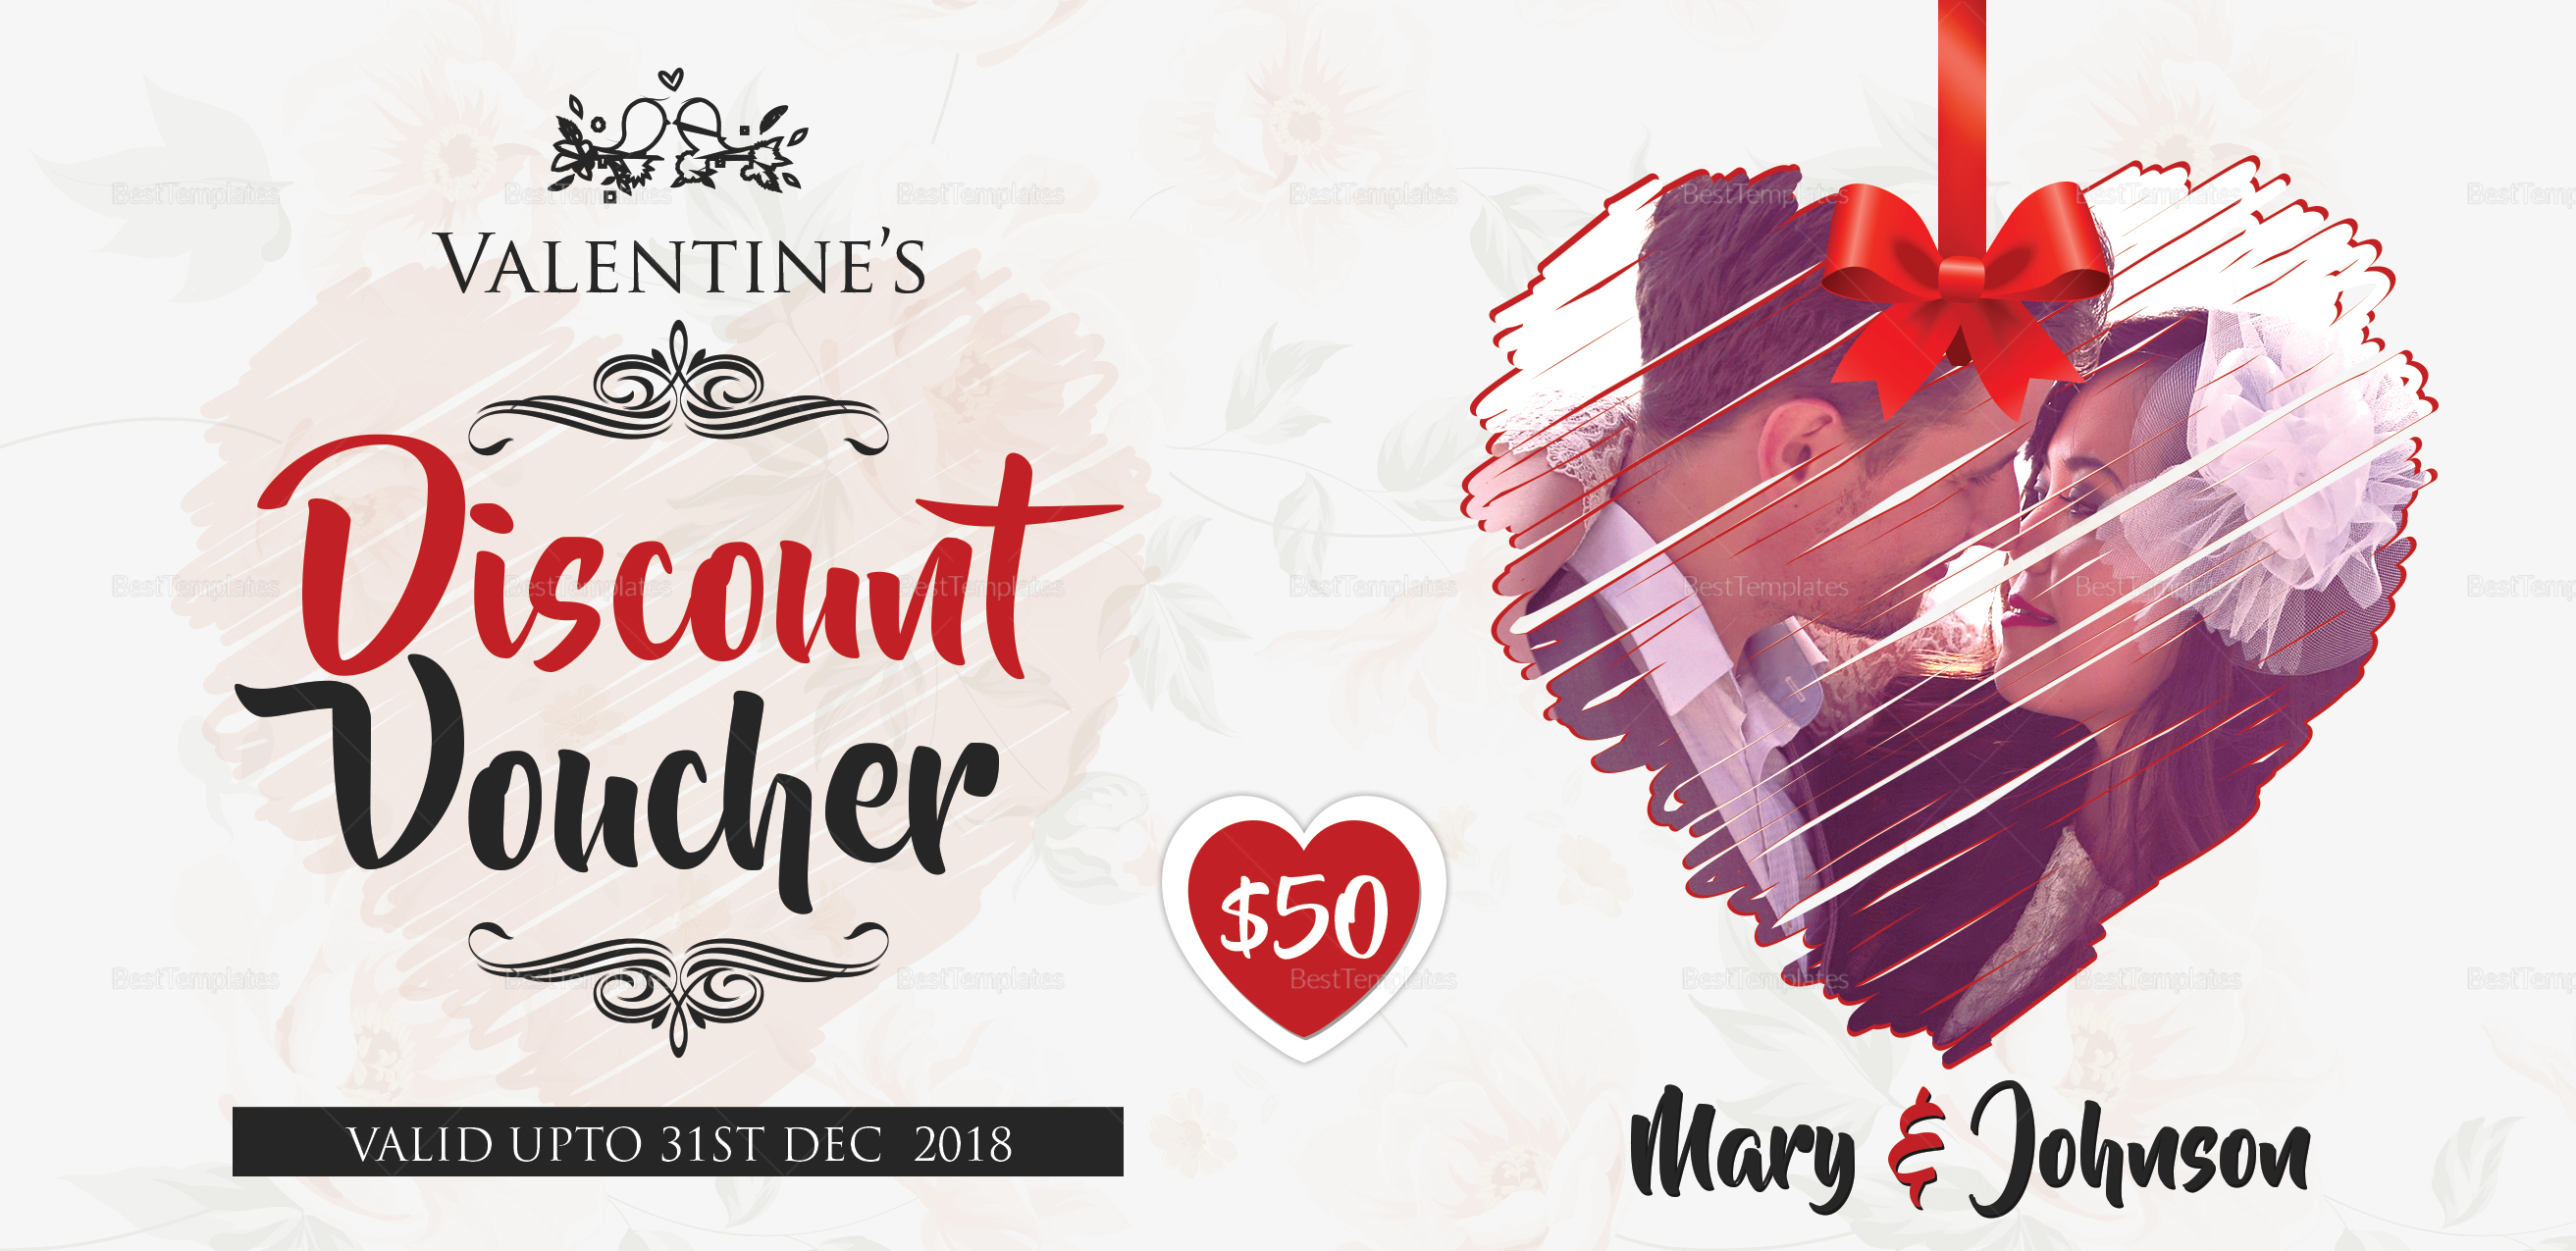 Valentine Discount Voucher Design Template